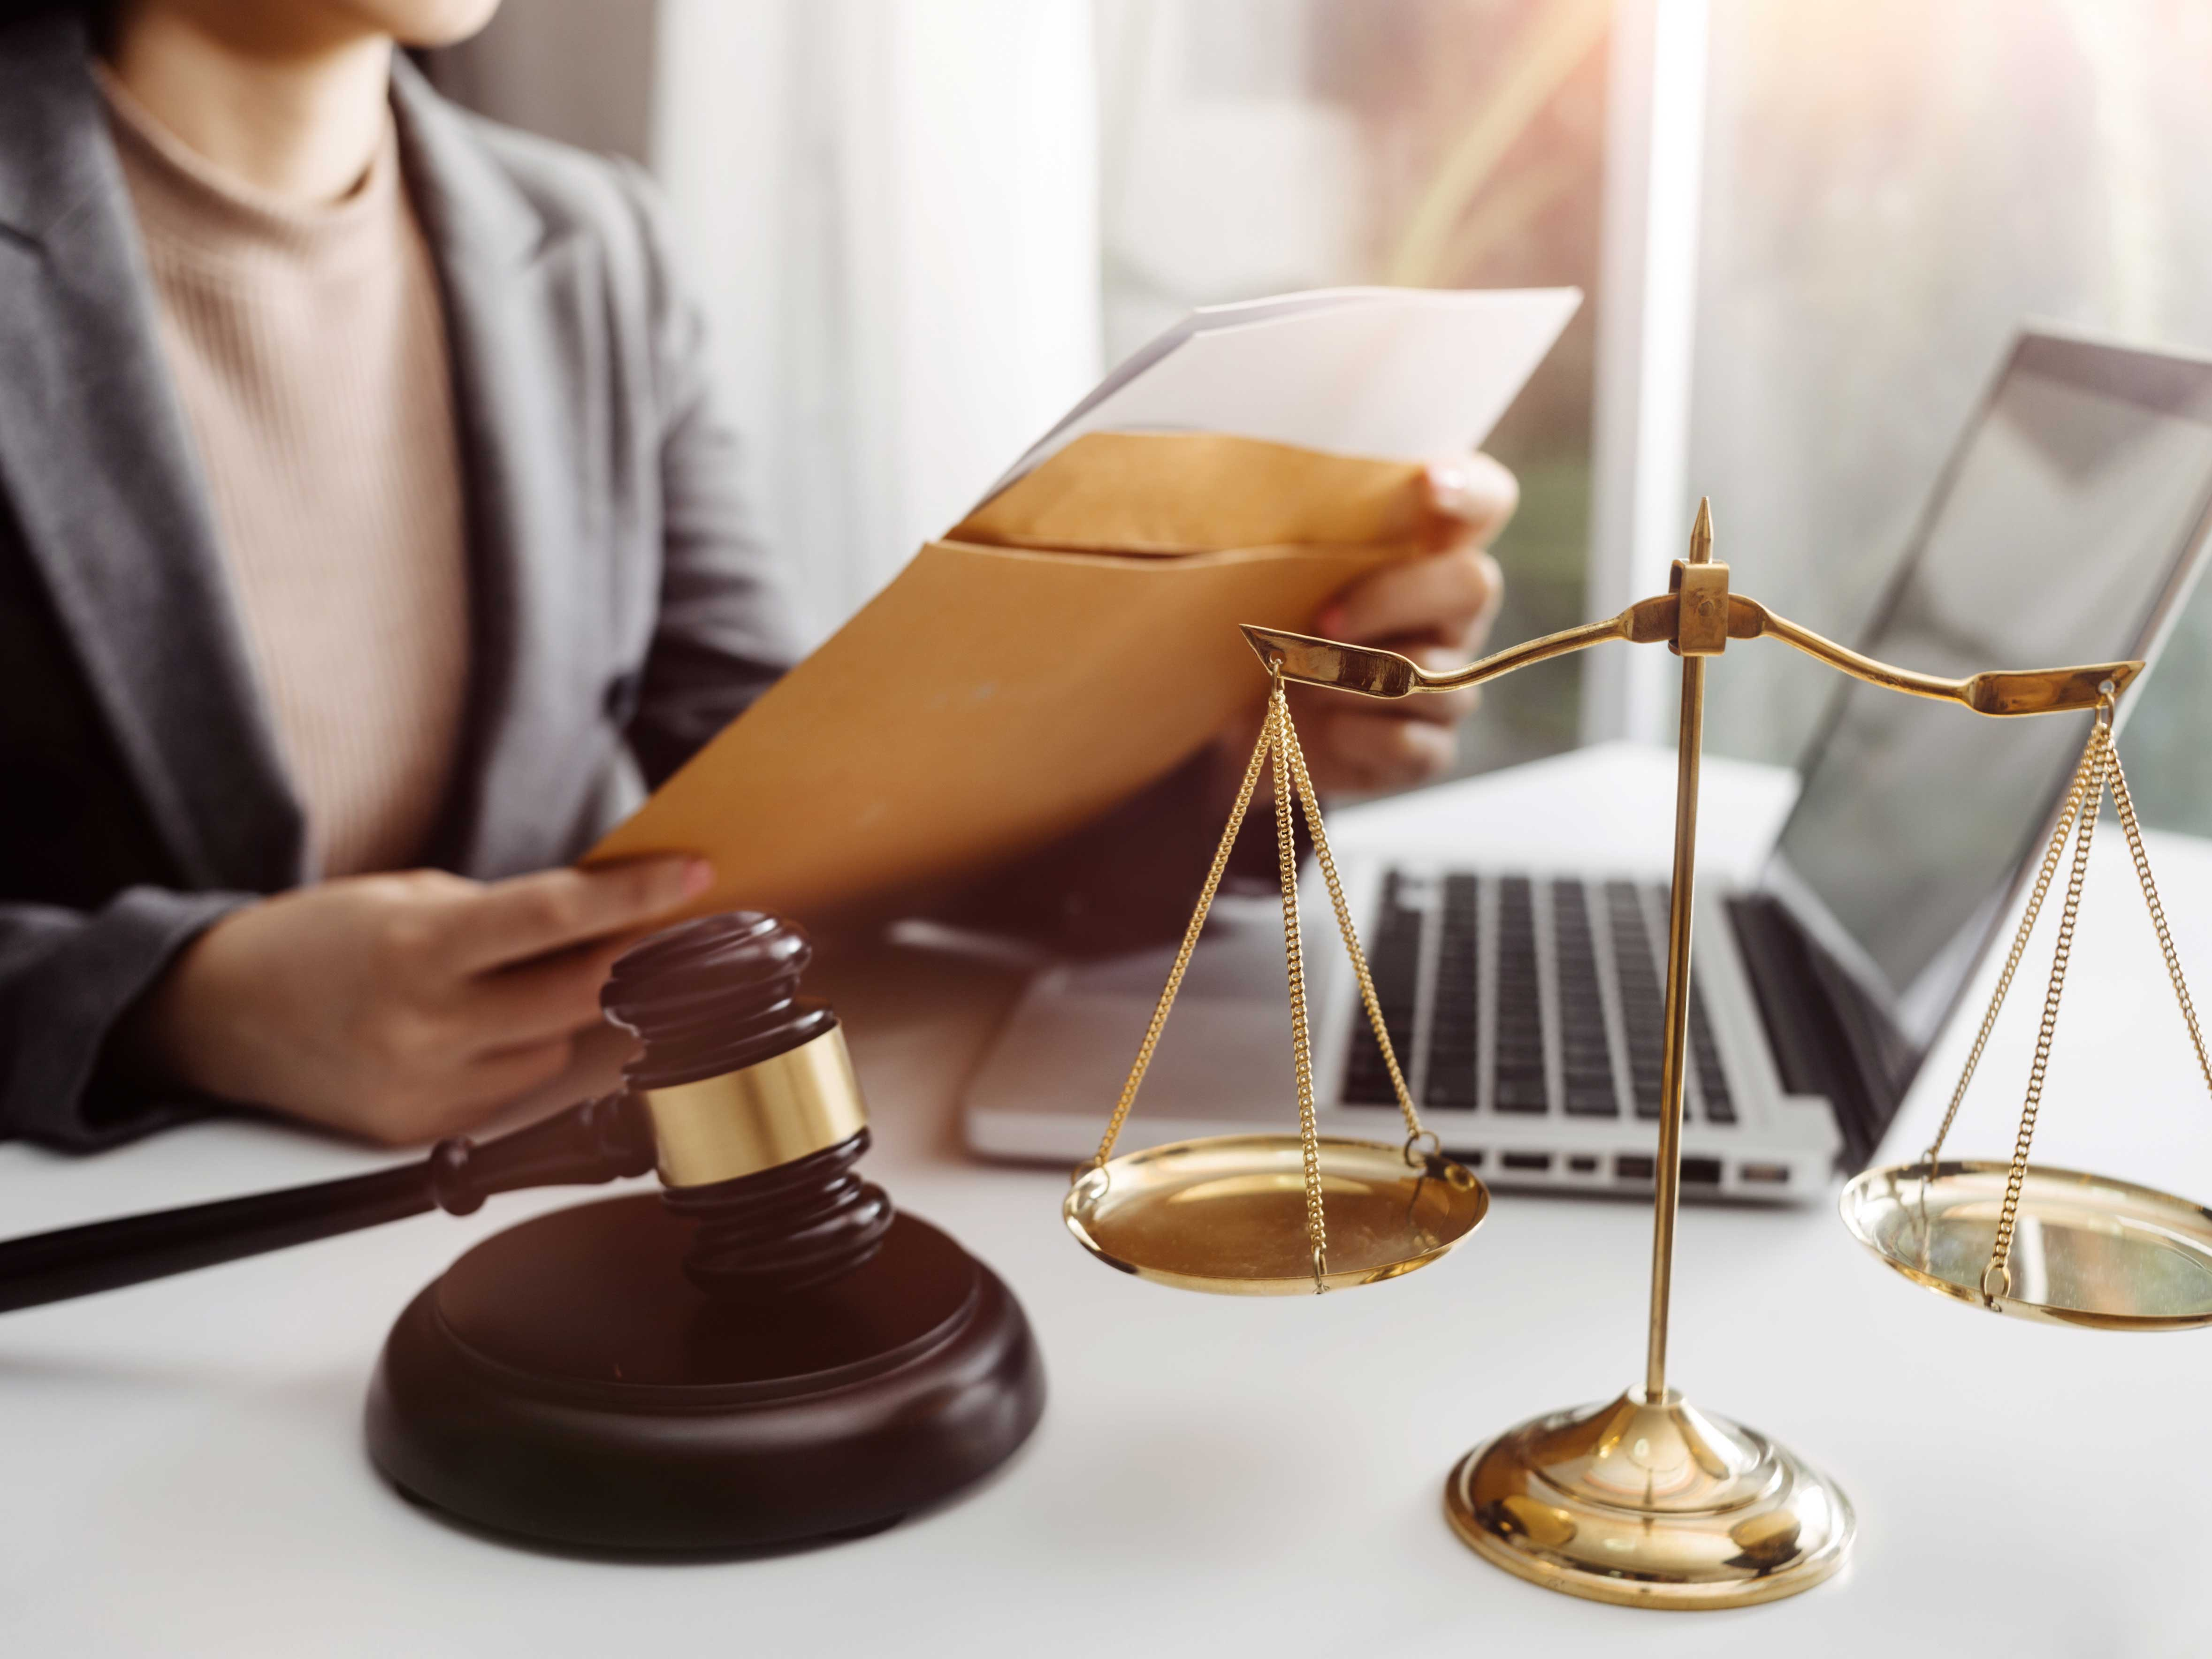 Maintaining legal professional privilege as a Commonwealth Government lawyer